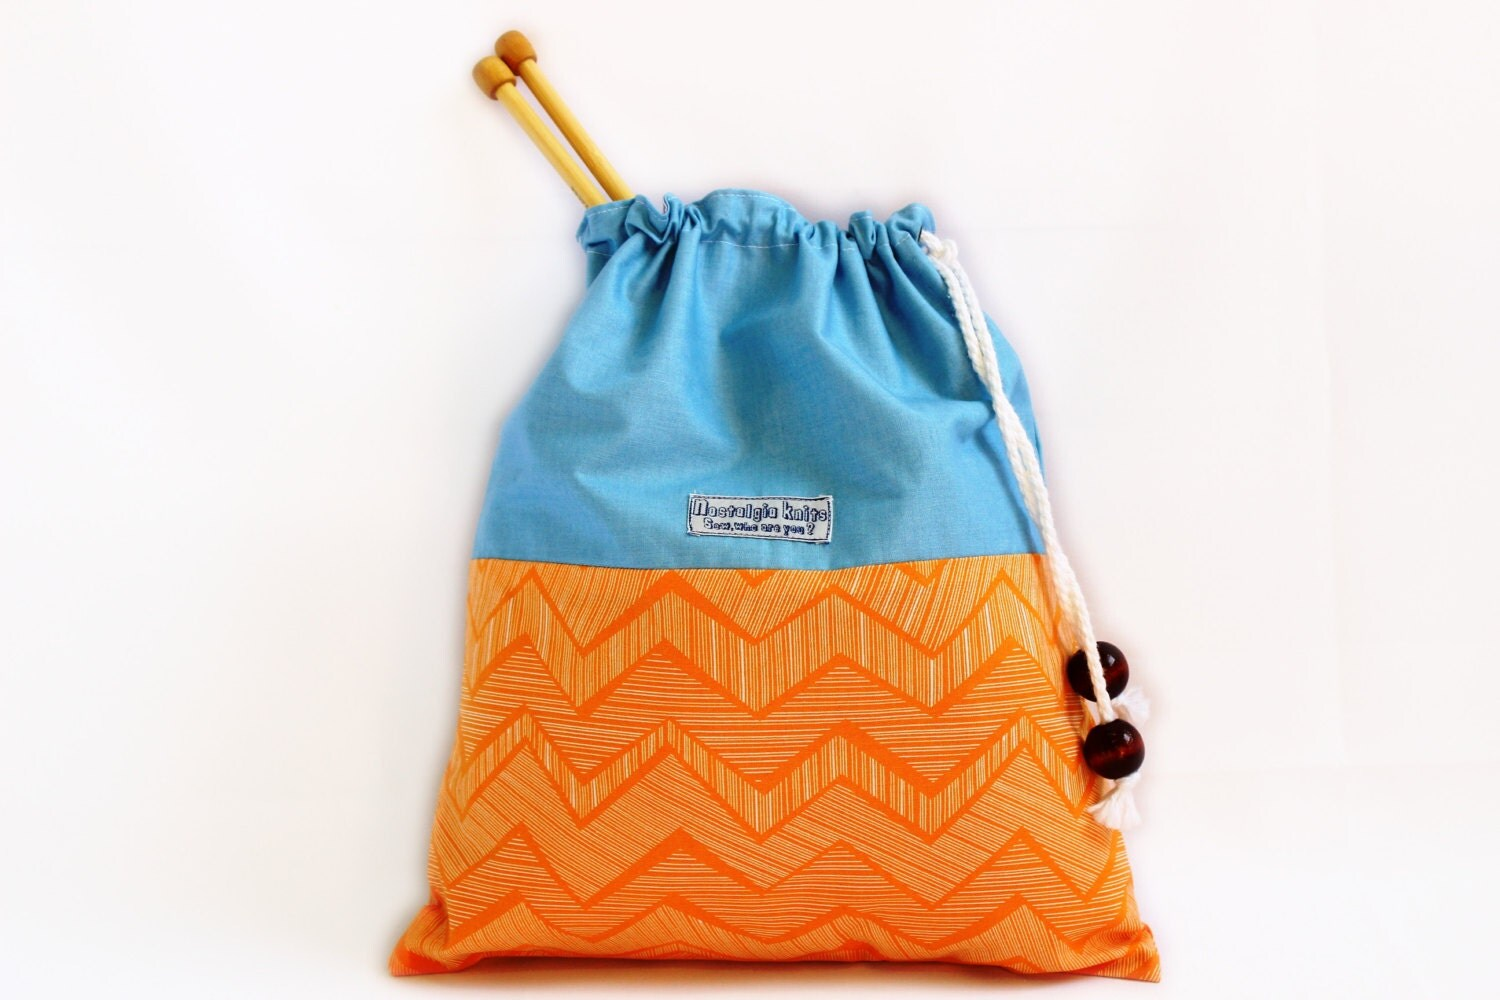 Knitting Project Bags To Sew : Knitting bag project drawstring by nostalgiaknits